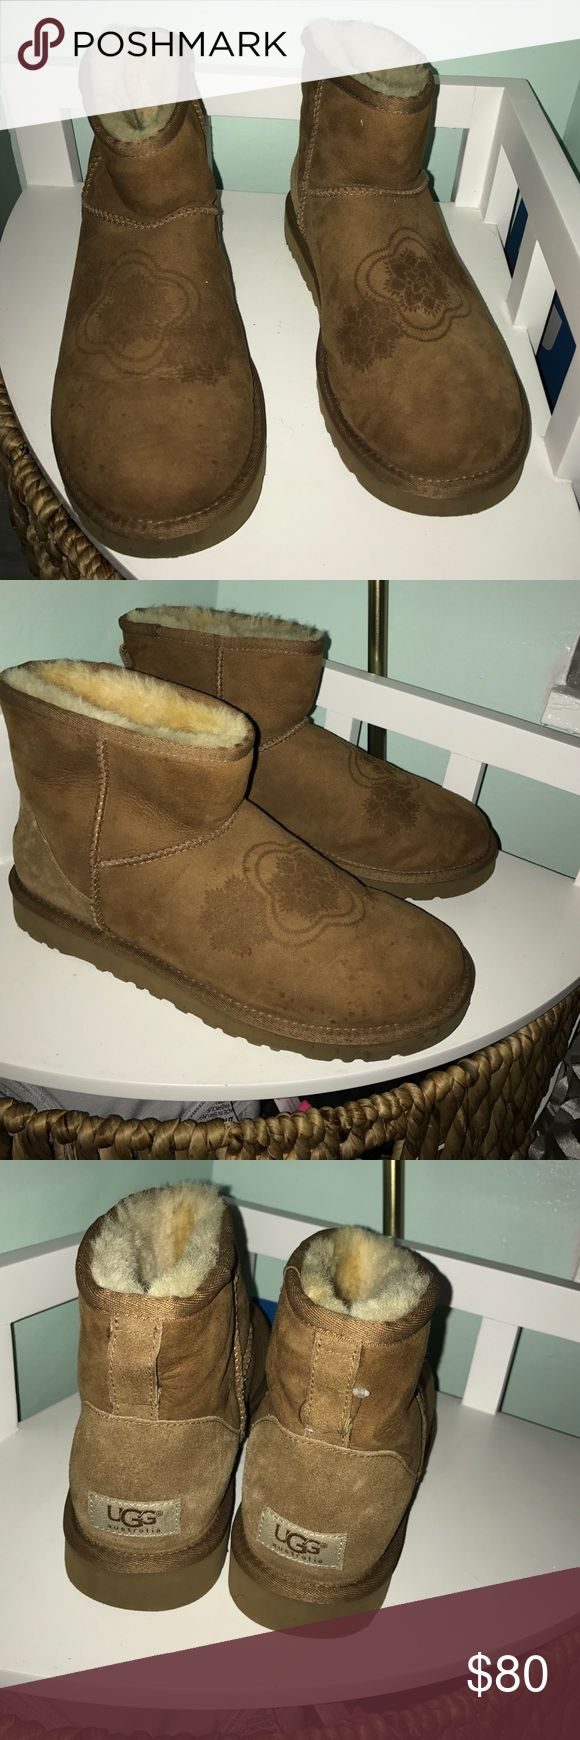 Mini Chestnut Uggs Mini chestnut 100% authentic Ugg boots! Minimal stains. Willing to negotiate :) UGG Shoes Winter & Rain Boots